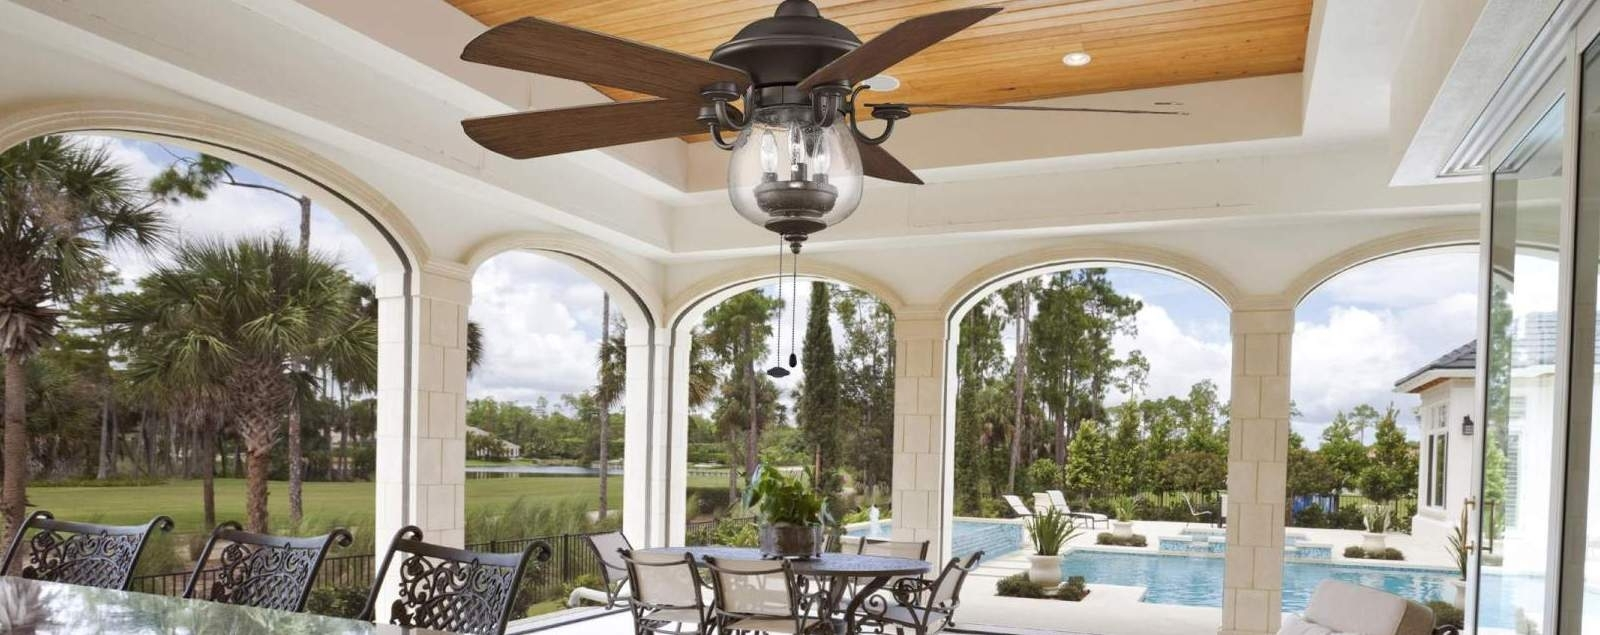 Featured Photo of Waterproof Outdoor Ceiling Fans